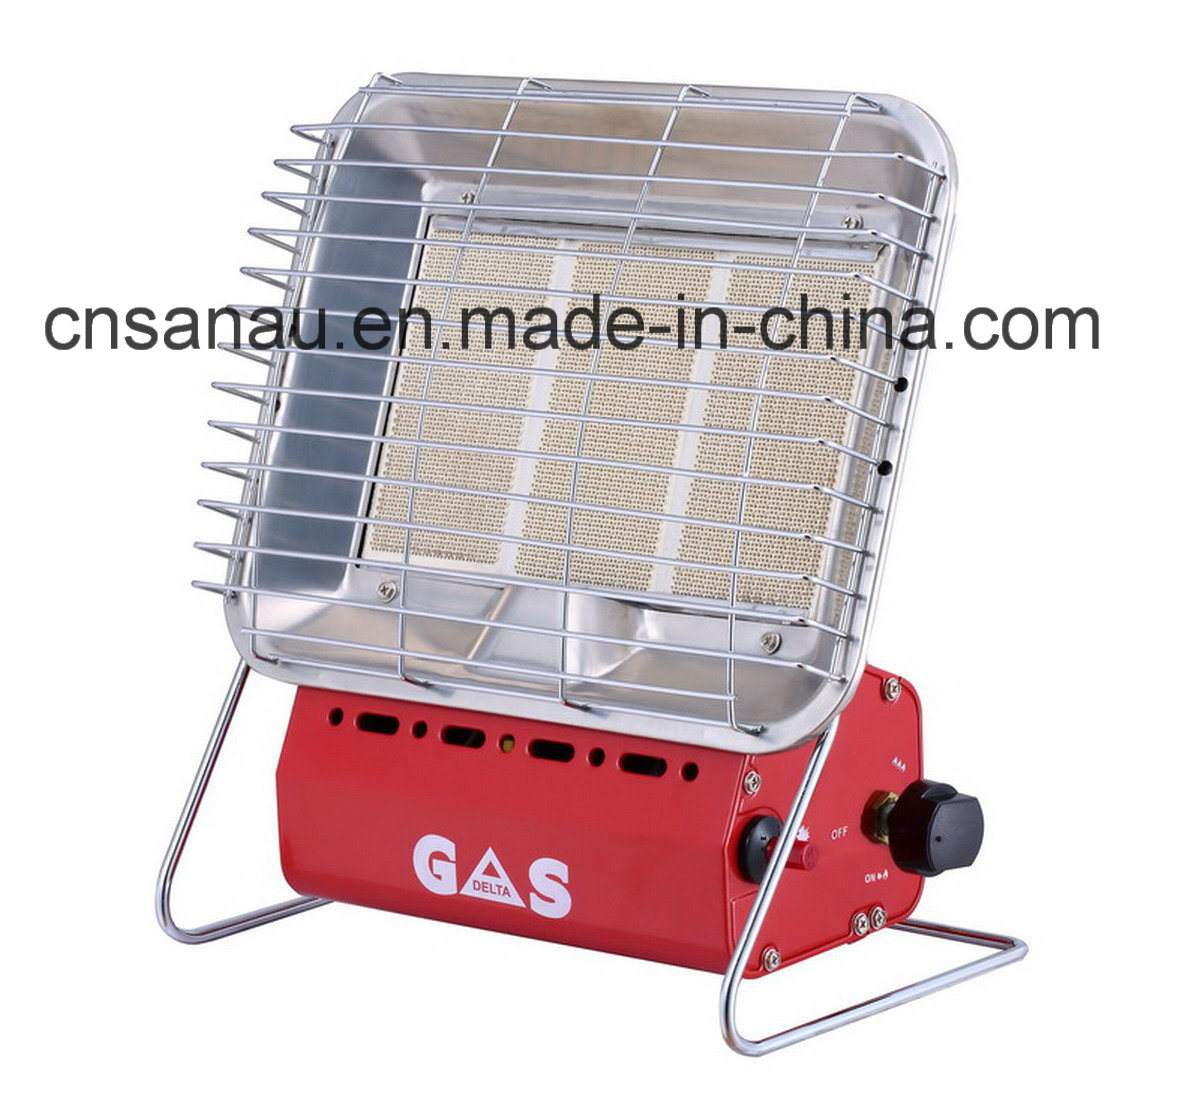 Portable Gas Heater with Ceramic Burner Sn13-Jyt pictures & photos